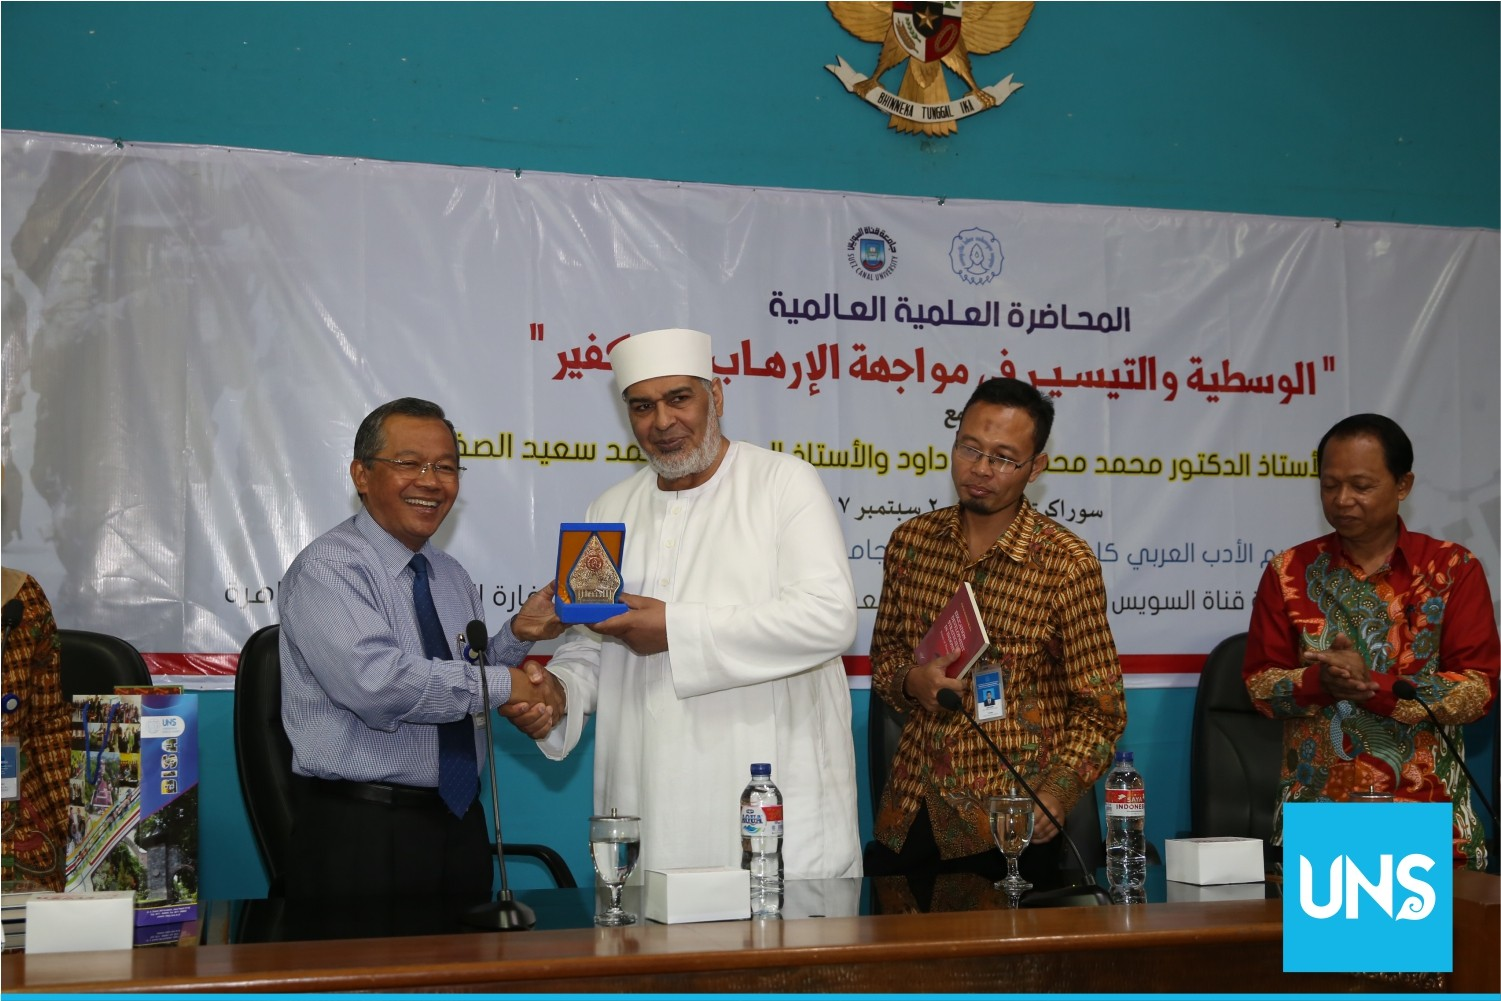 UNS Cultural Faculty Conducts General Lecture against Terrorism, Dawood: Fight with Education